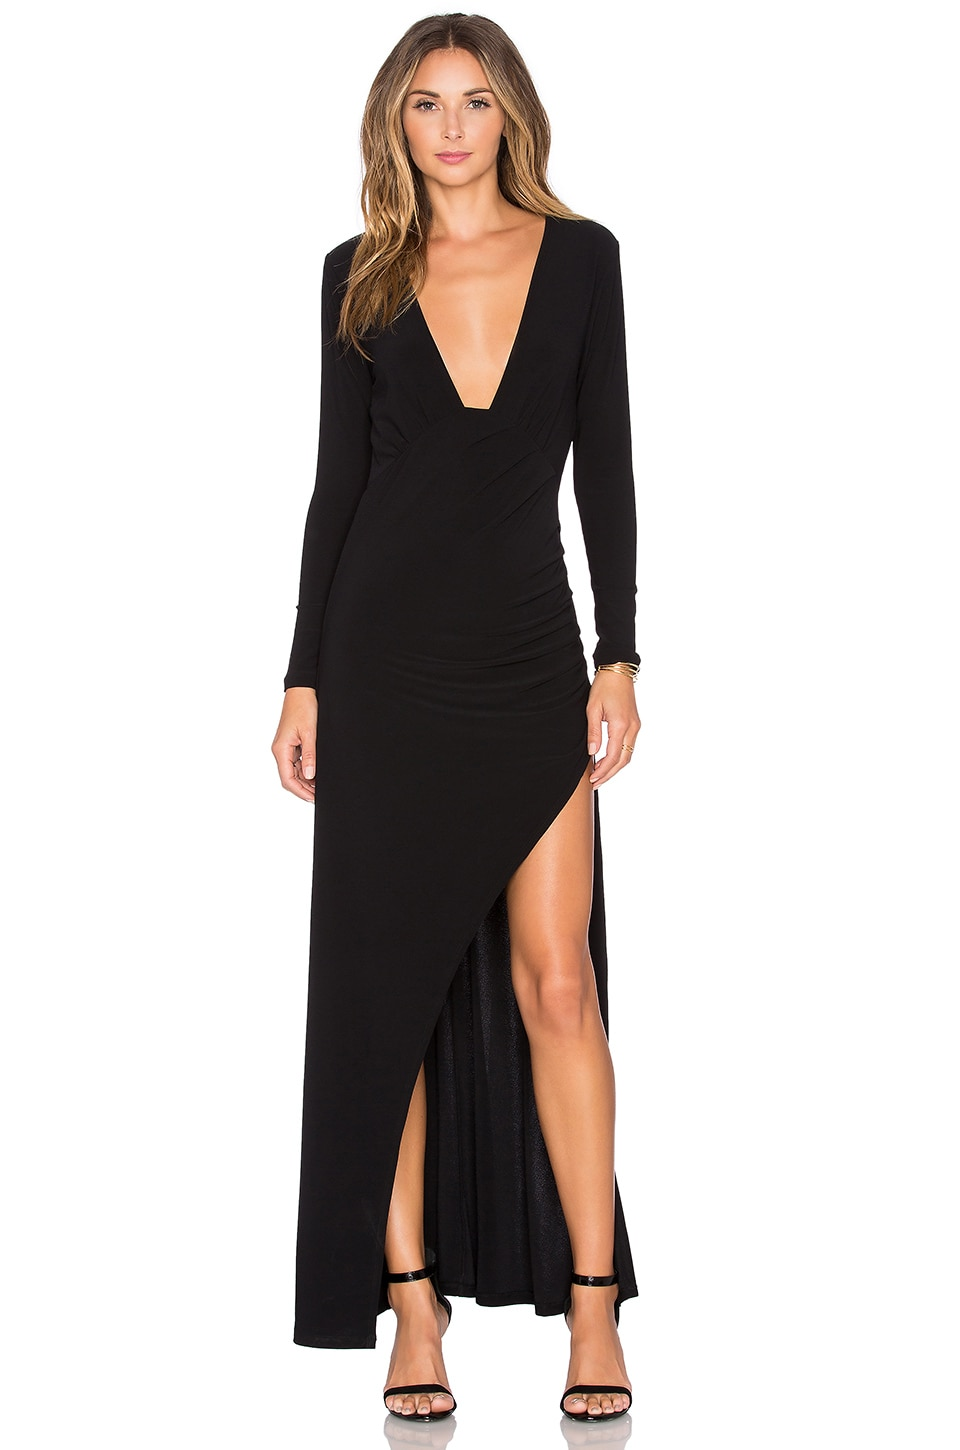 x REVOLVE Own The Night Maxi Dress